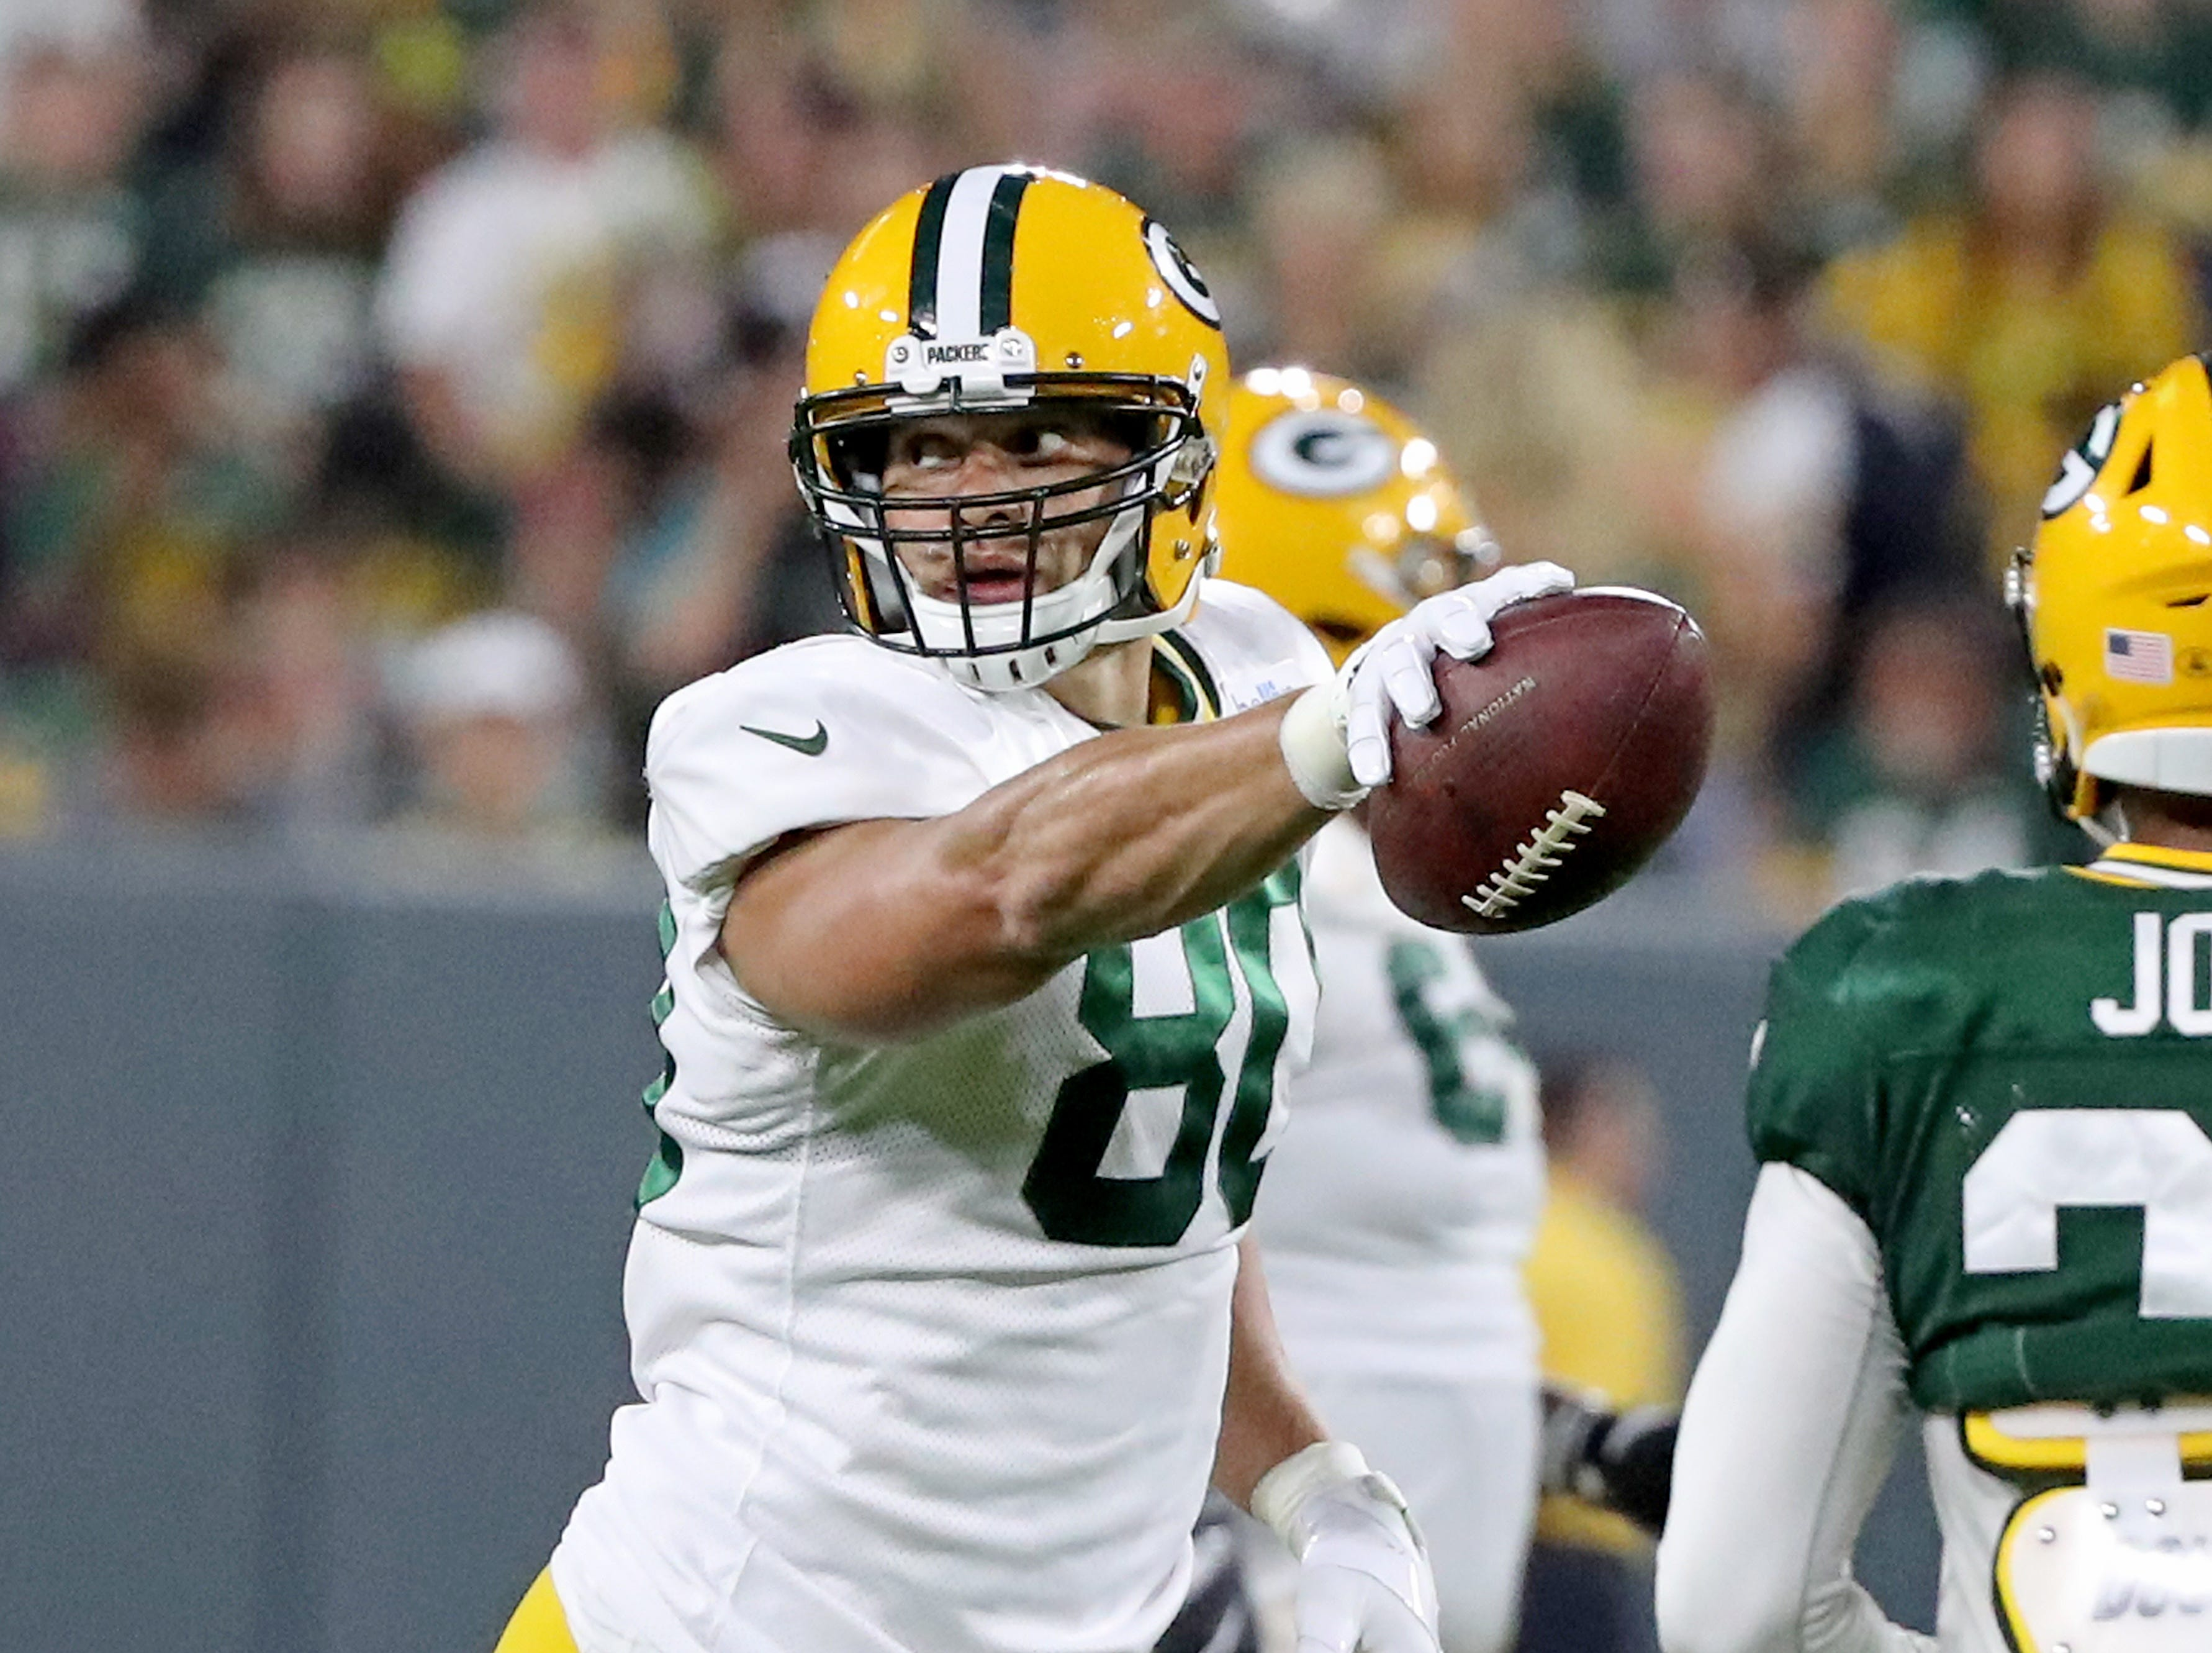 Green Bay Packers tight end Jimmy Graham (80) signals first down during Green Bay Packers Family Night  Saturday, August 4, 2018 at Lambeau Field in Green Bay, Wis.,